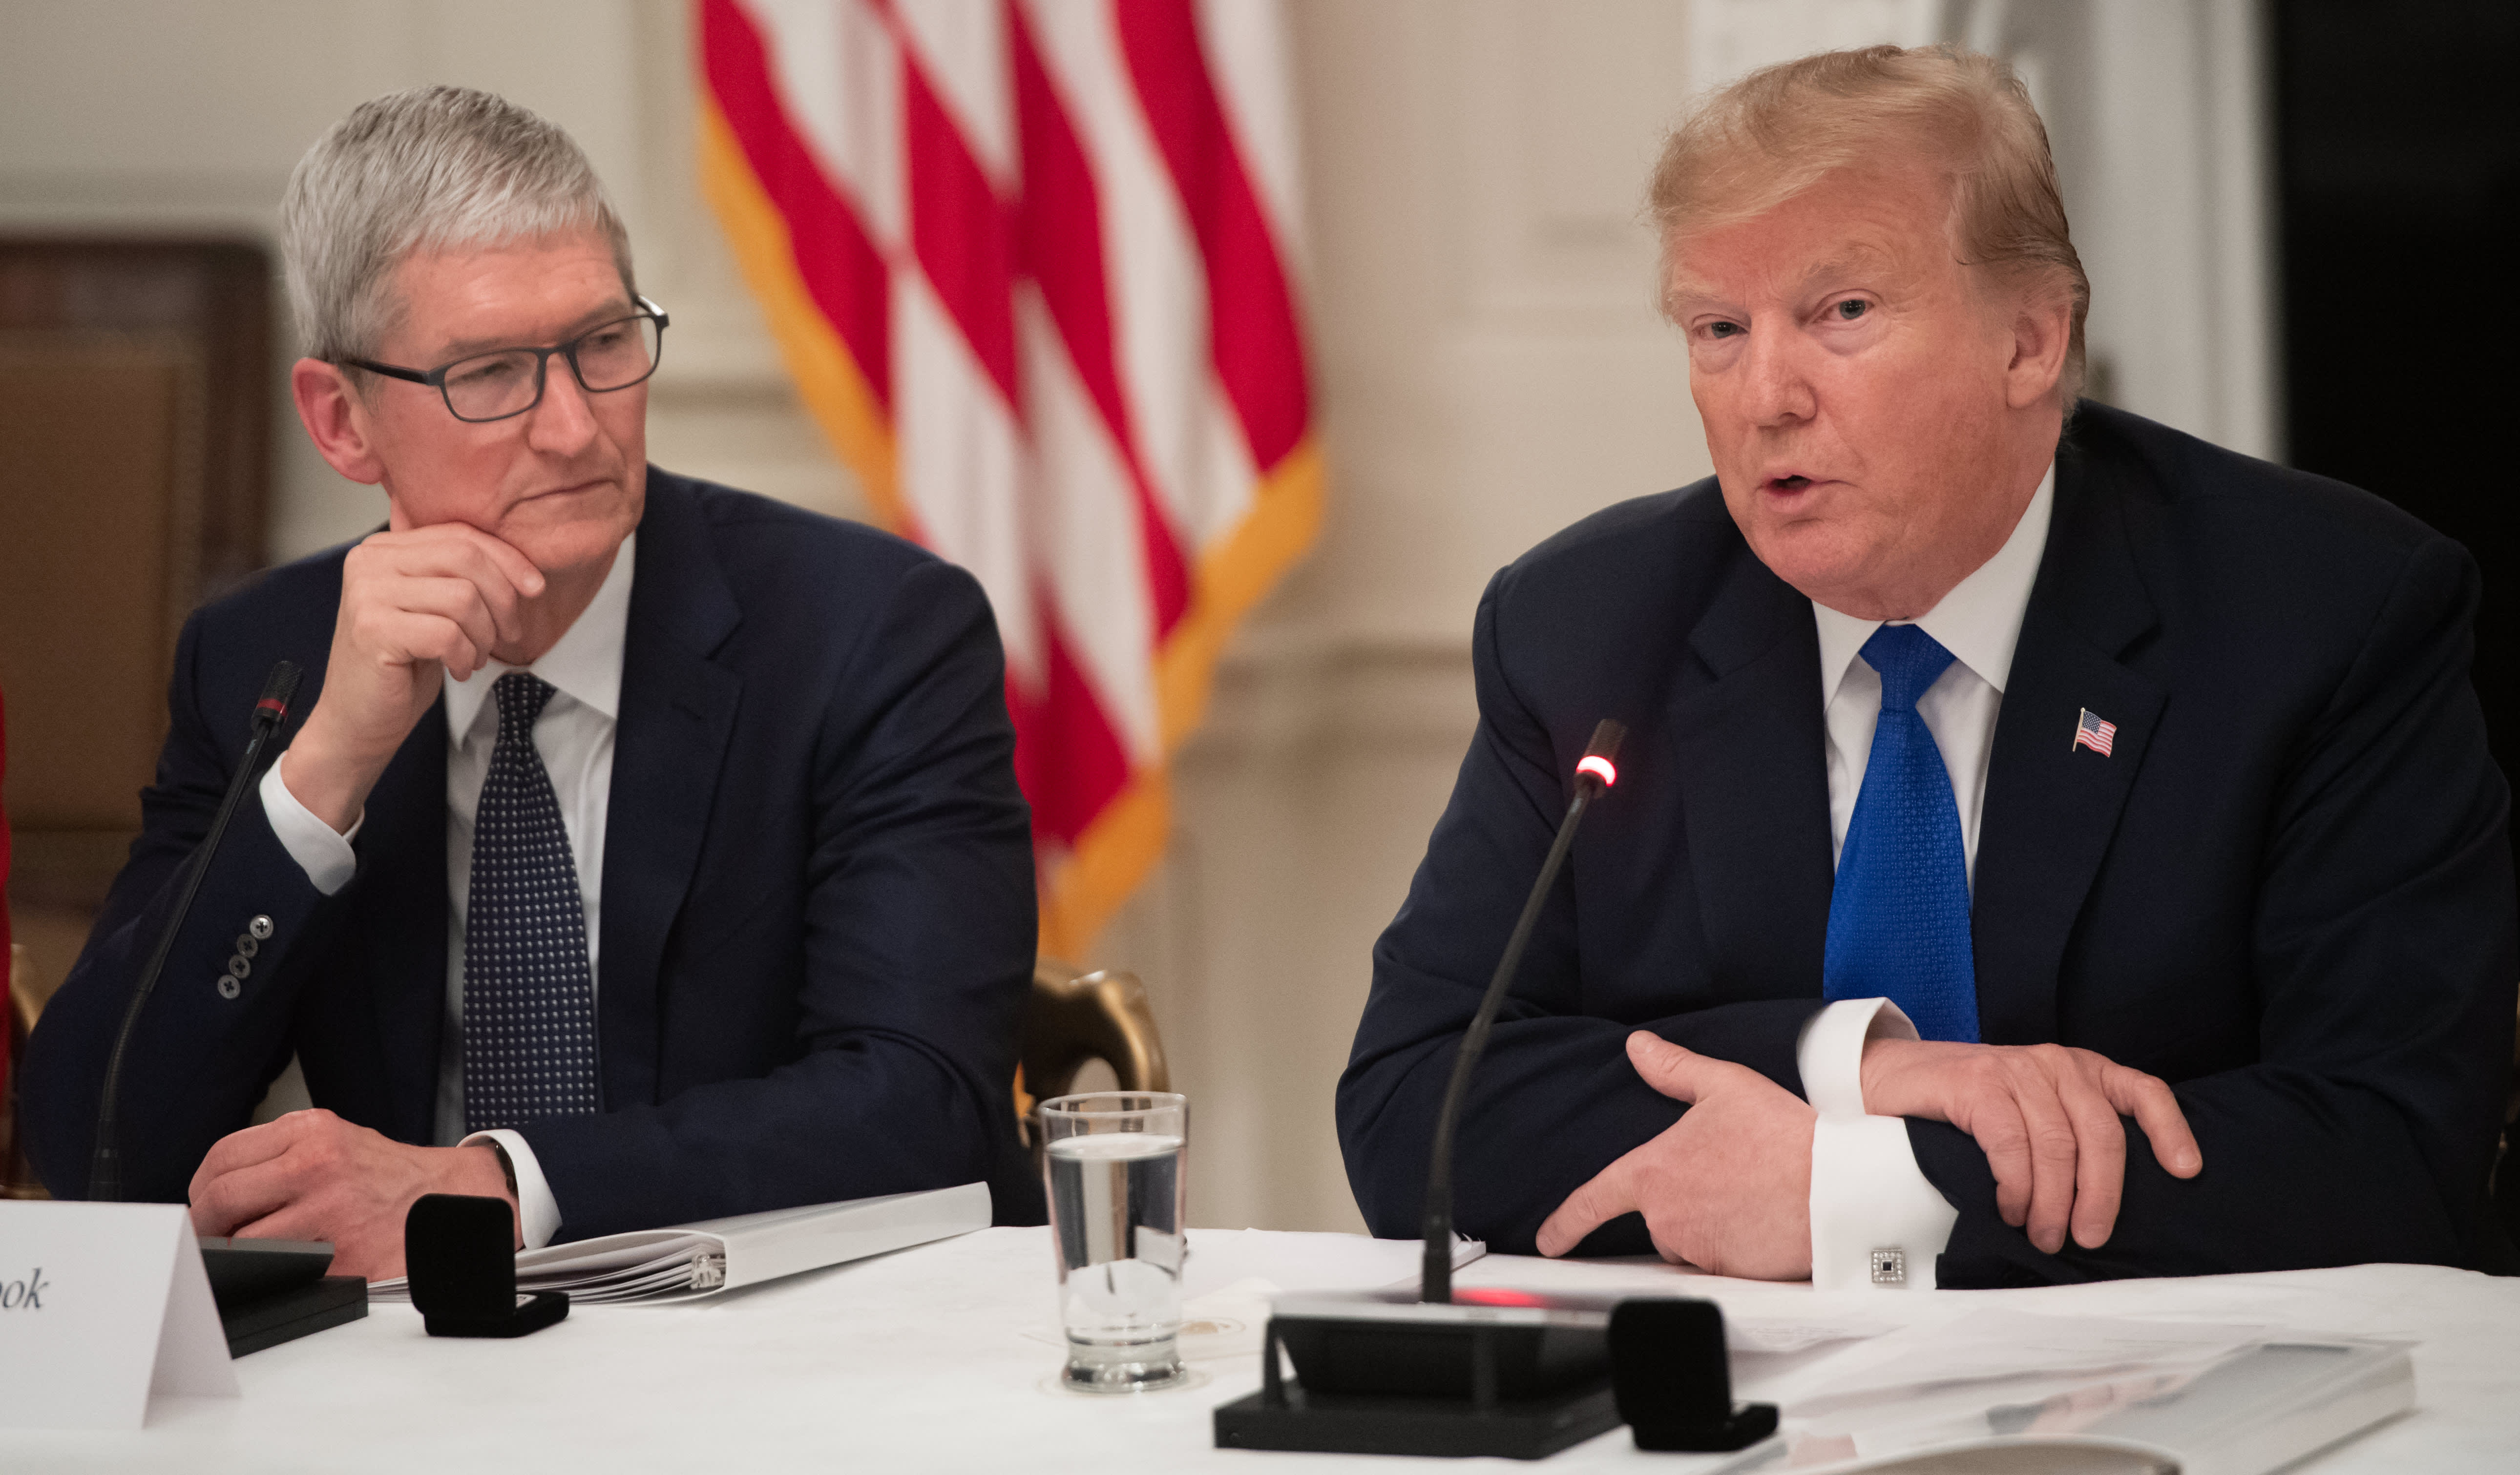 Trump says Apple will not be given tariff waivers or relief for Mac Pro parts made in China